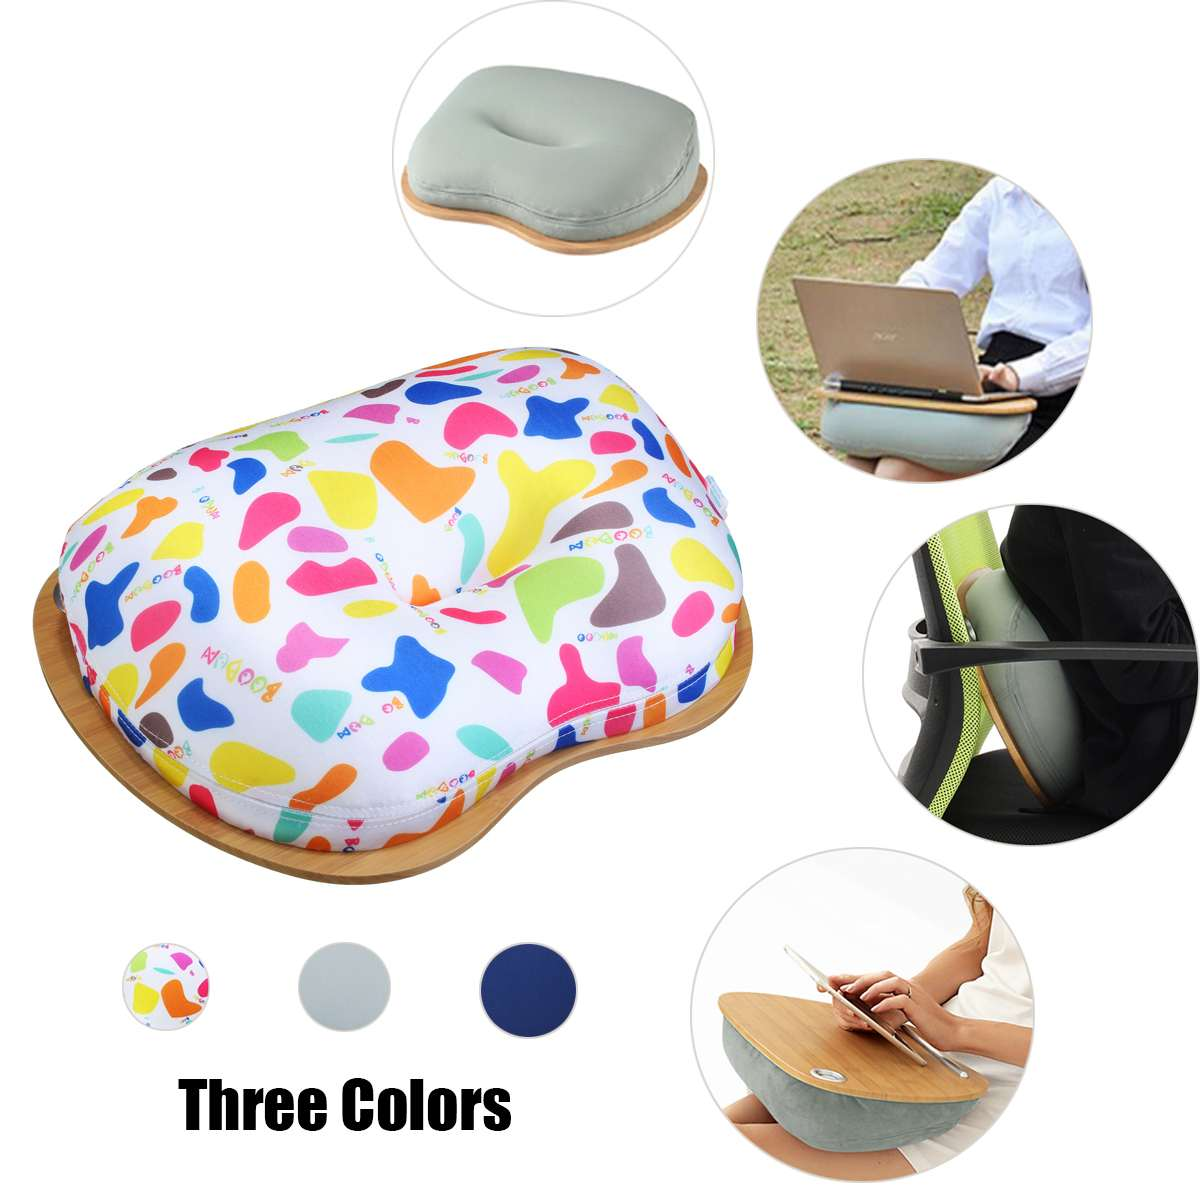 Multifunction Laptop Tray Stand Pillow Knee Wooden Table Bed Holder Portable Laptop Desk For Notebook Outdoor Headrest Office